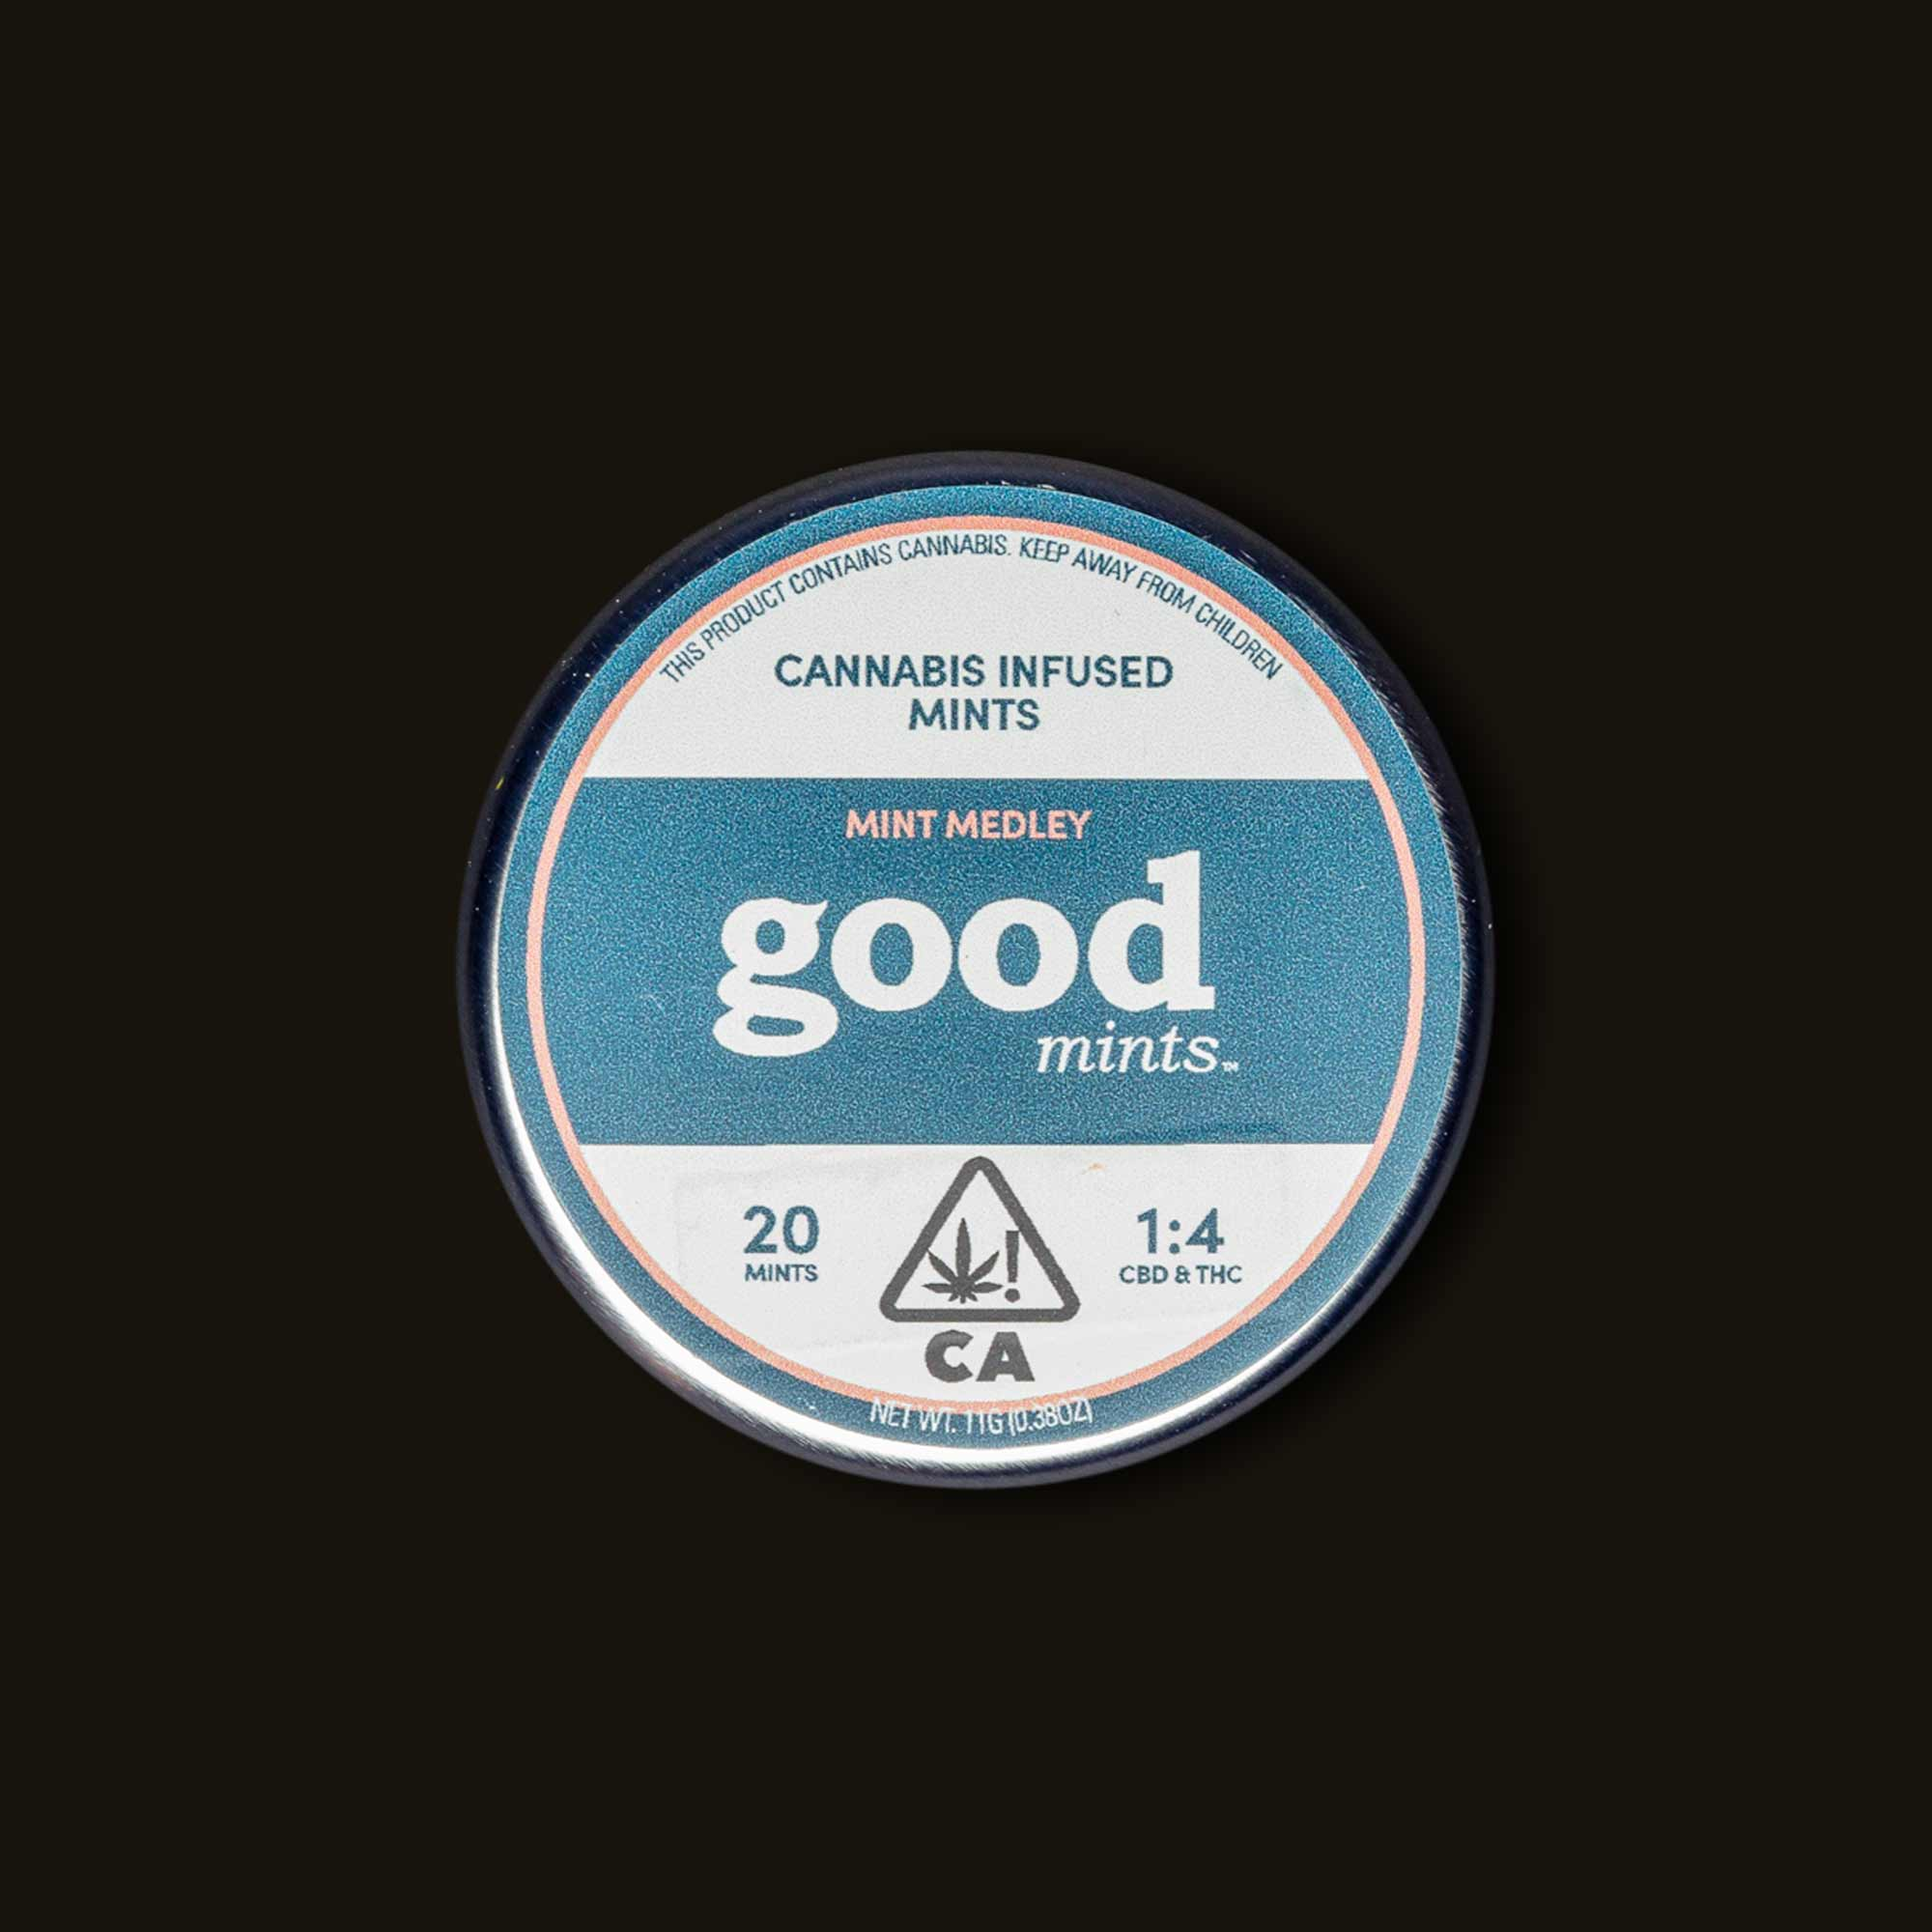 Good Brands 1:4 Mint Medley